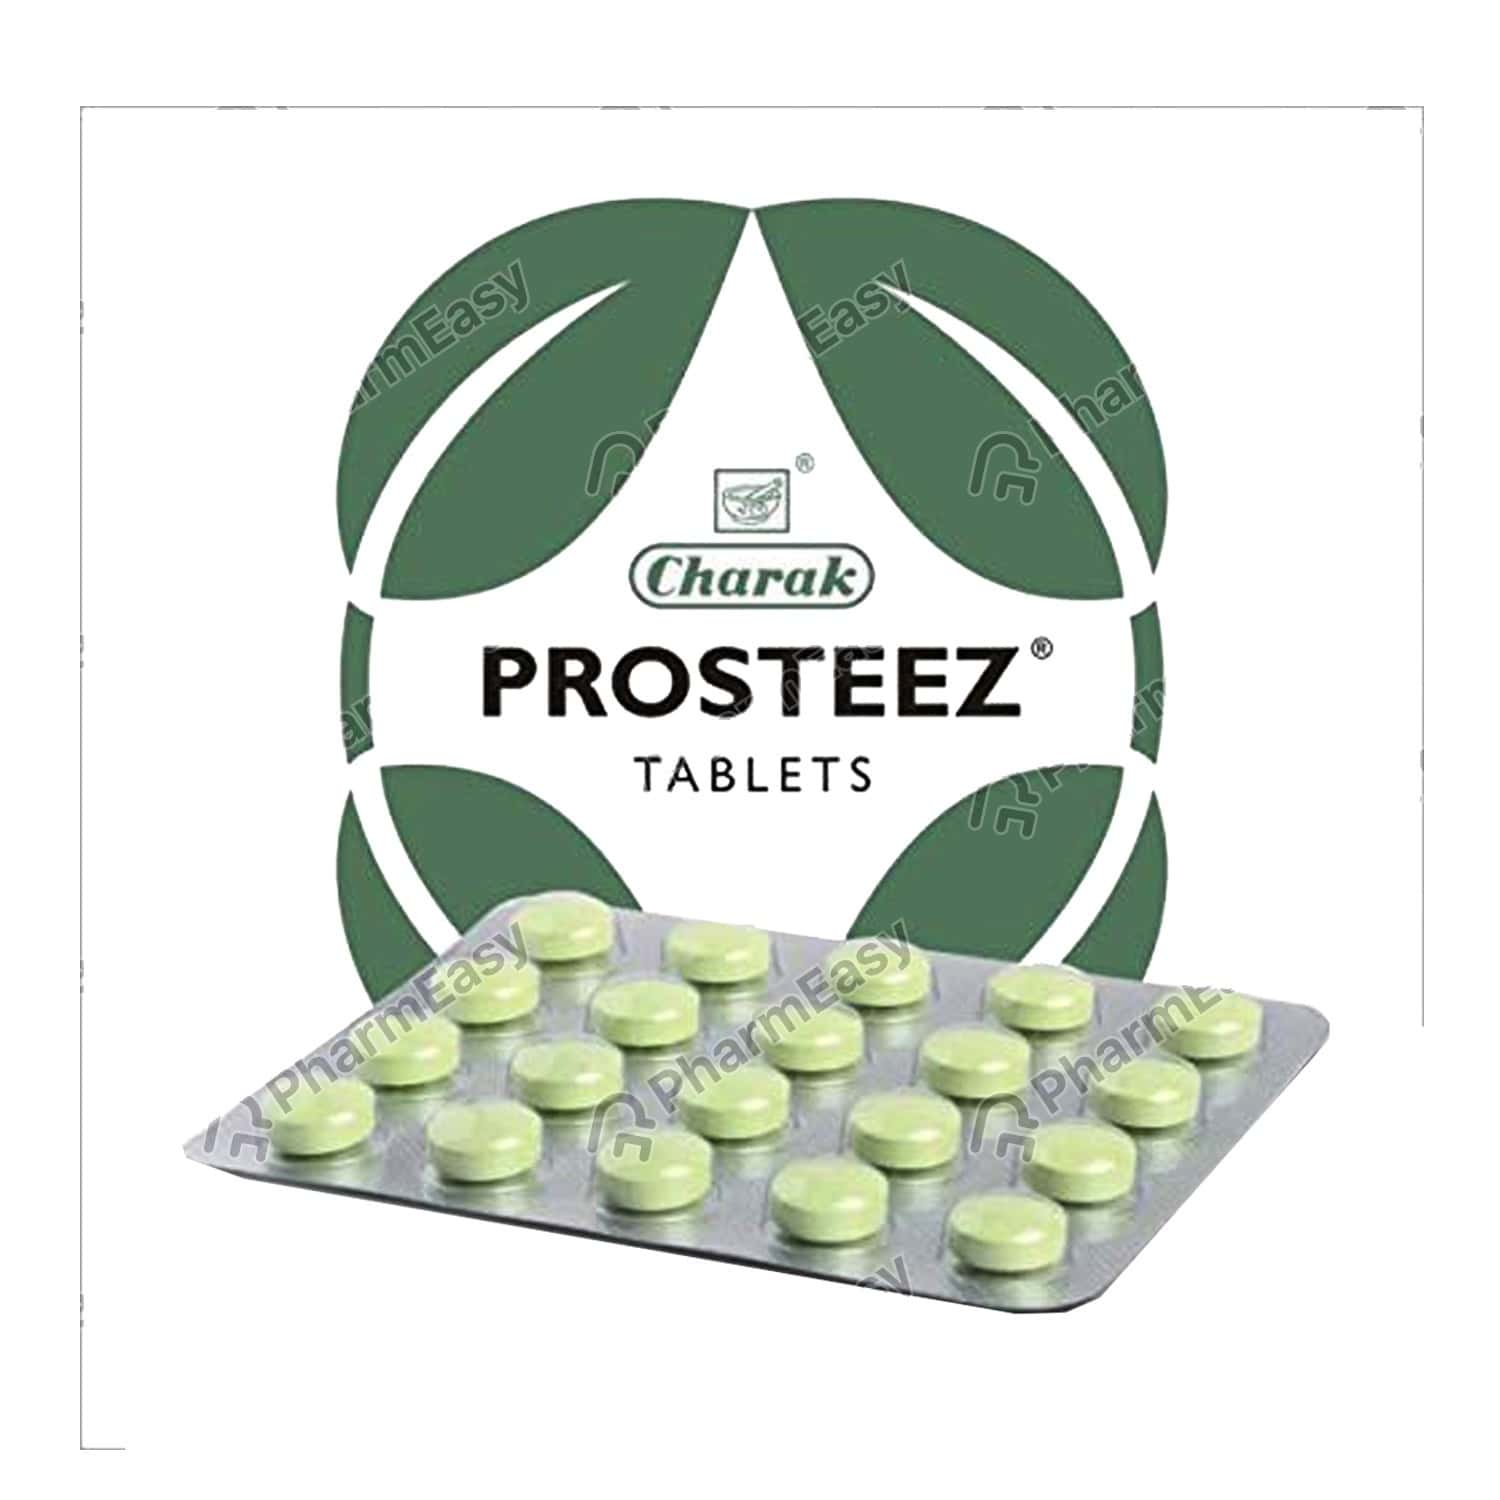 Charak Prosteez Tablets